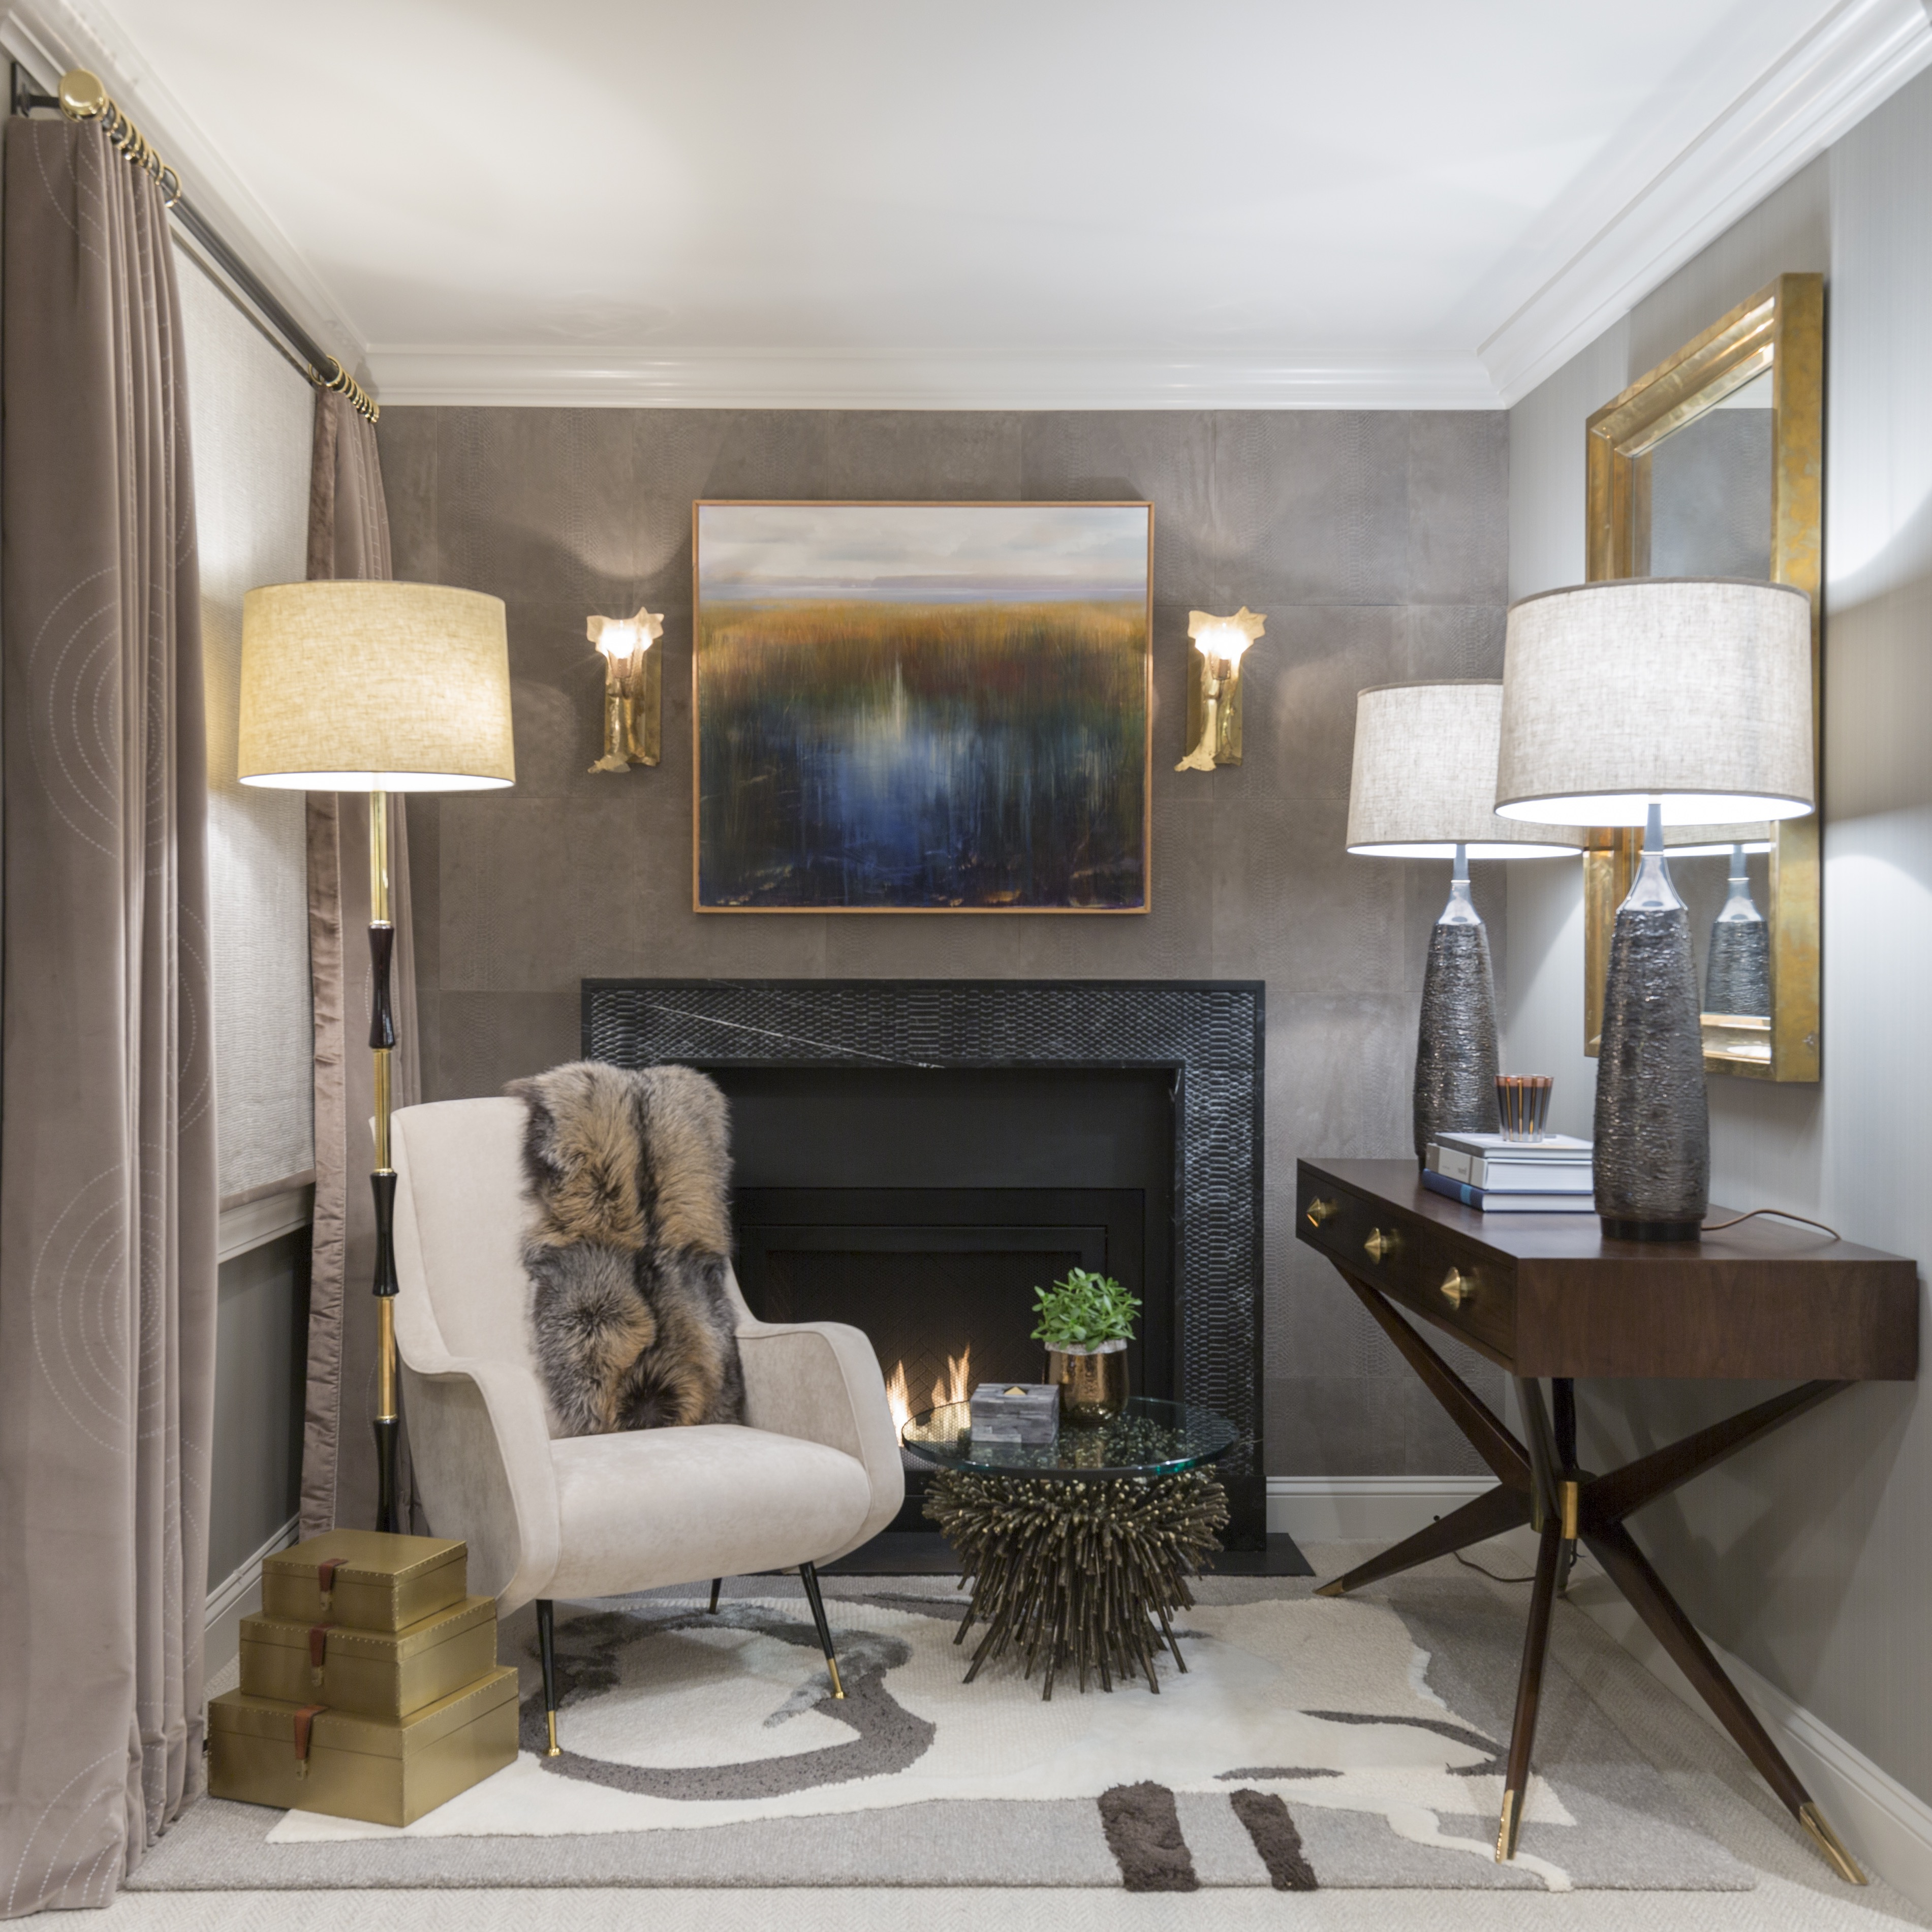 Small Elegant Ethnical Sitting Room With Fireplace (Image 13 of 15)